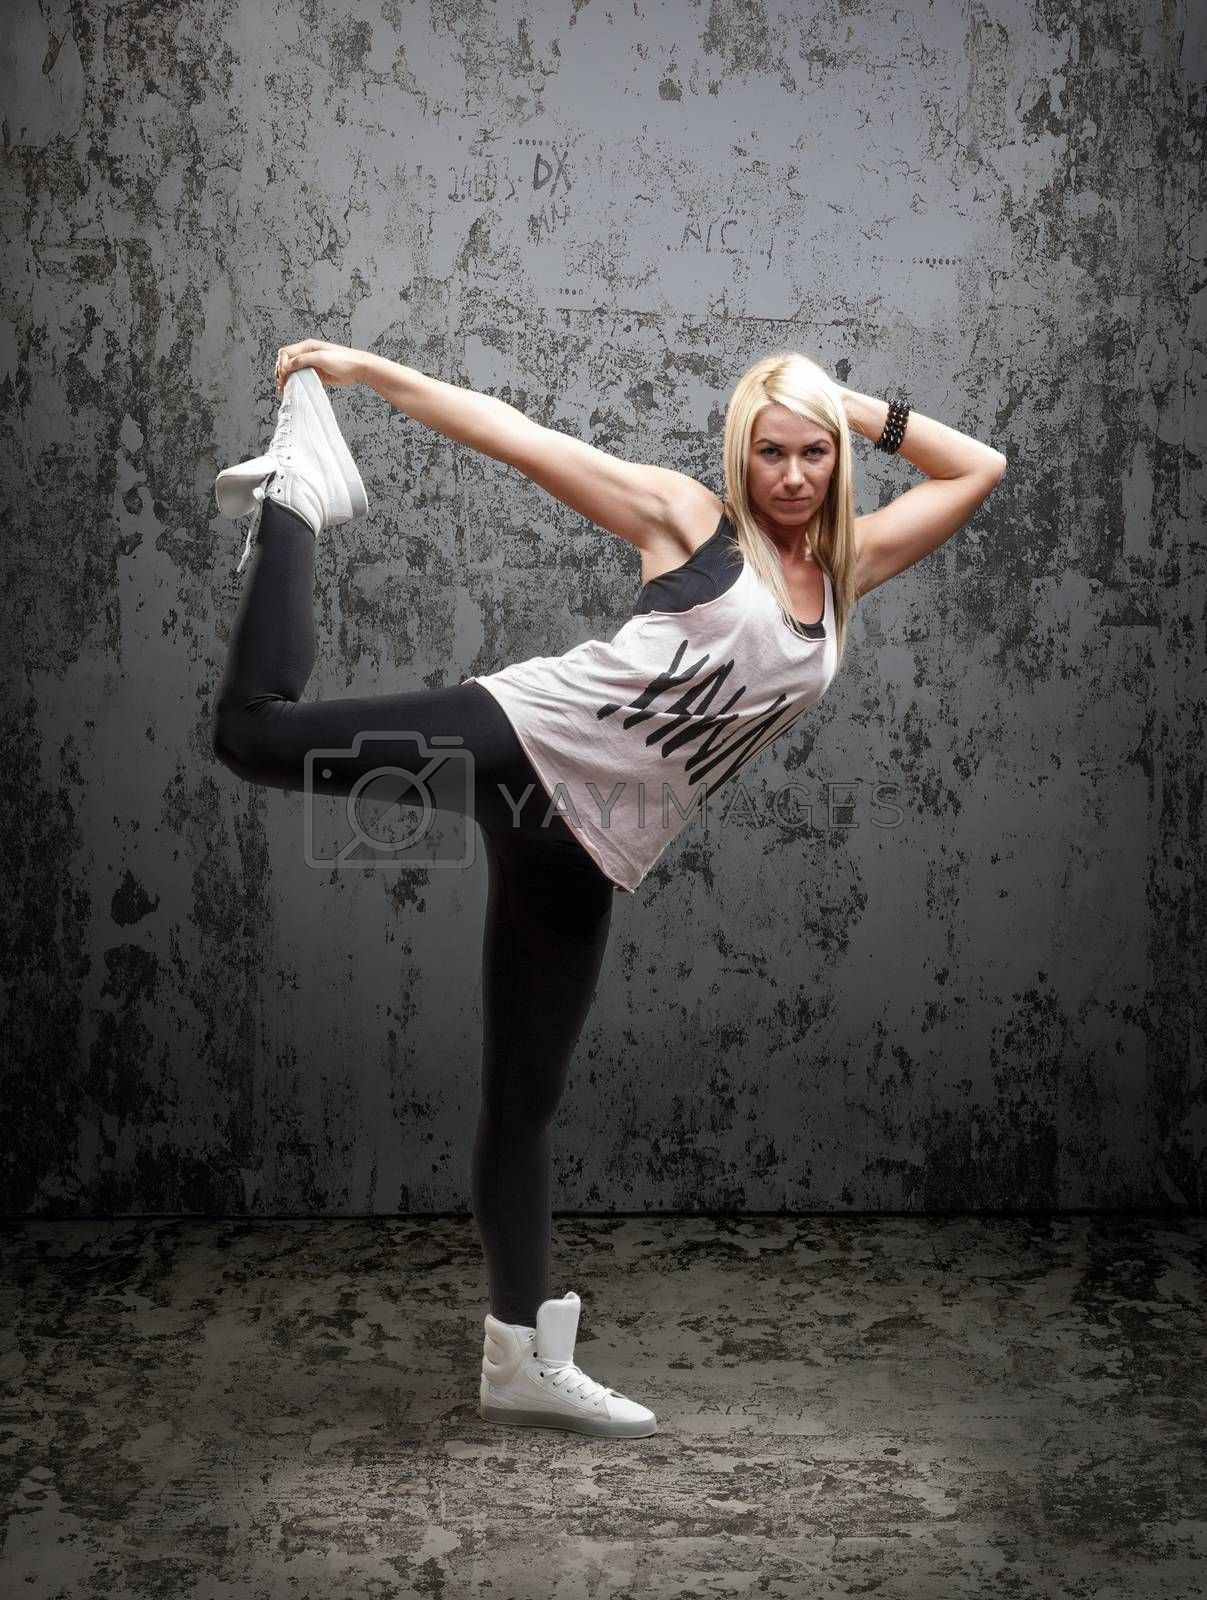 Urban hip hop dancer with grunge concrete wall background texture